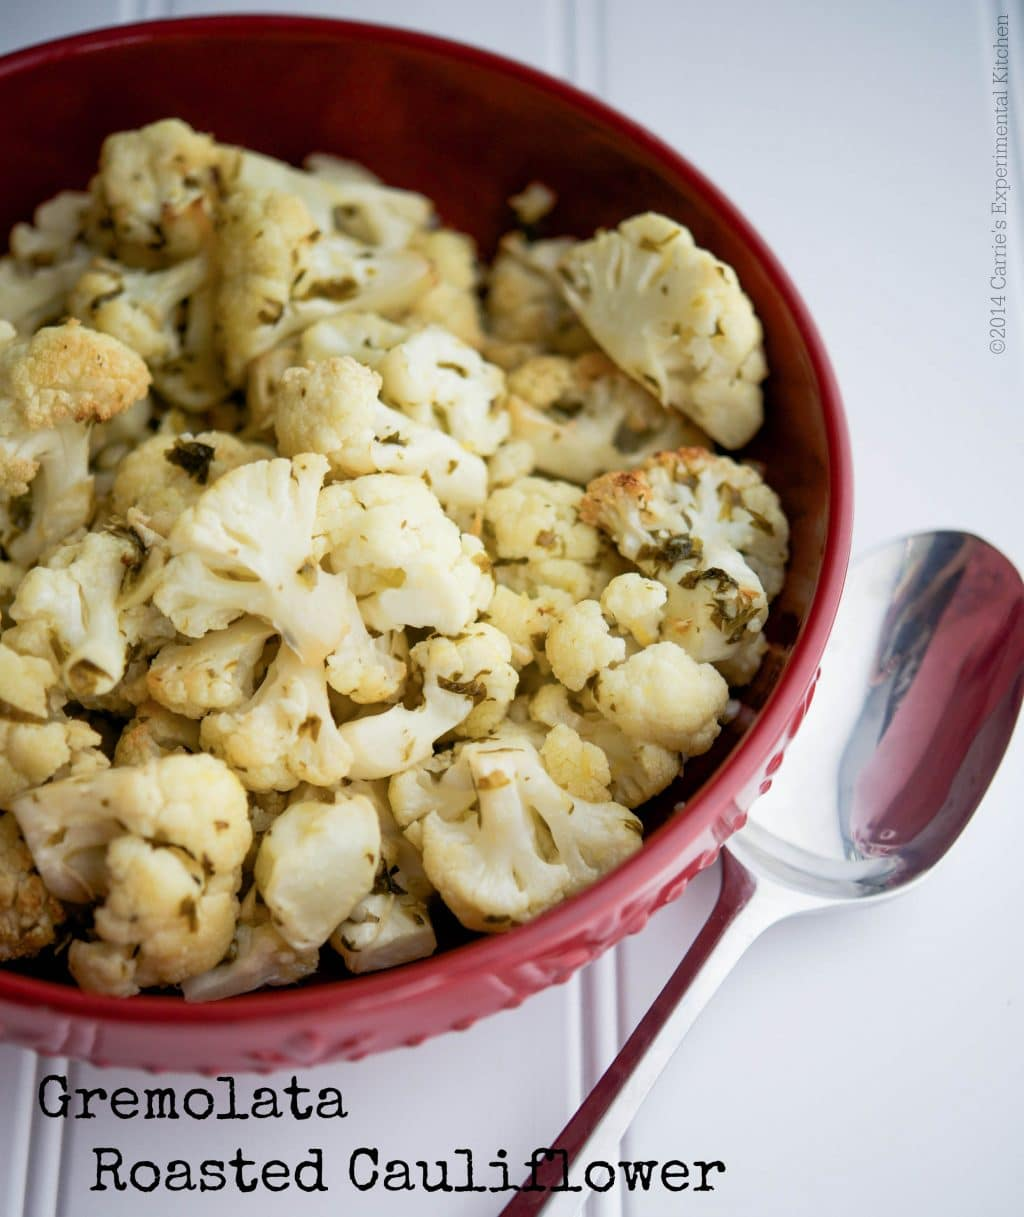 Gremolata Roasted Cauliflower | Carrie's Experimental Kitchen #cauliflower #